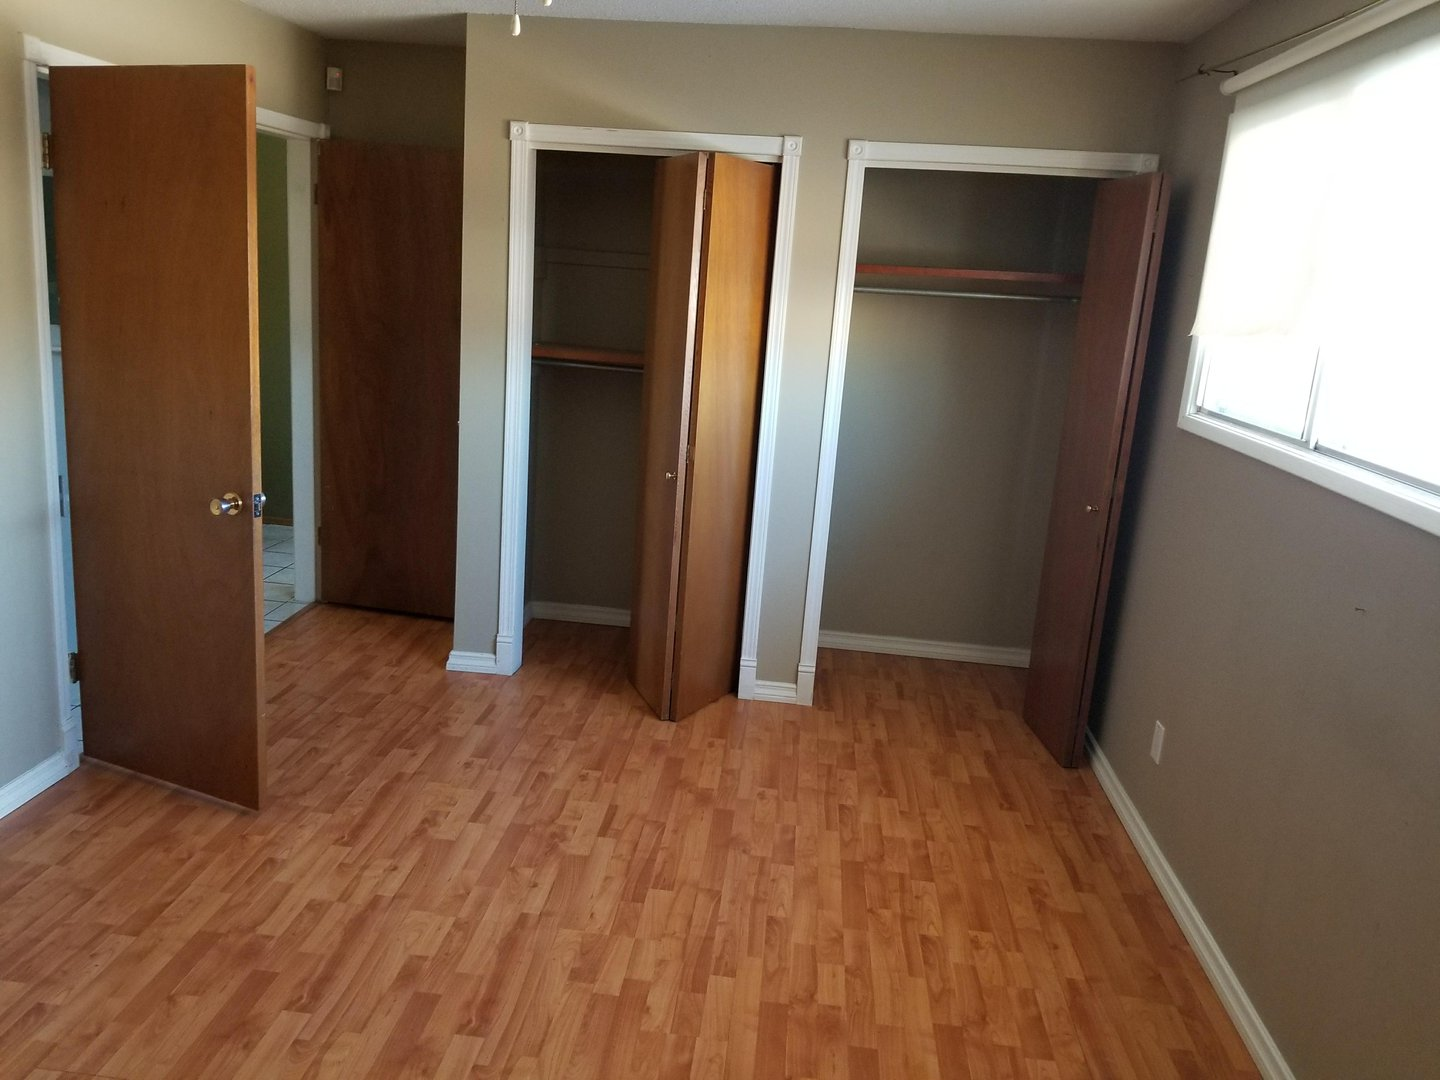 Apartment for rent at 9627 149 St NW, Edmonton, AB.